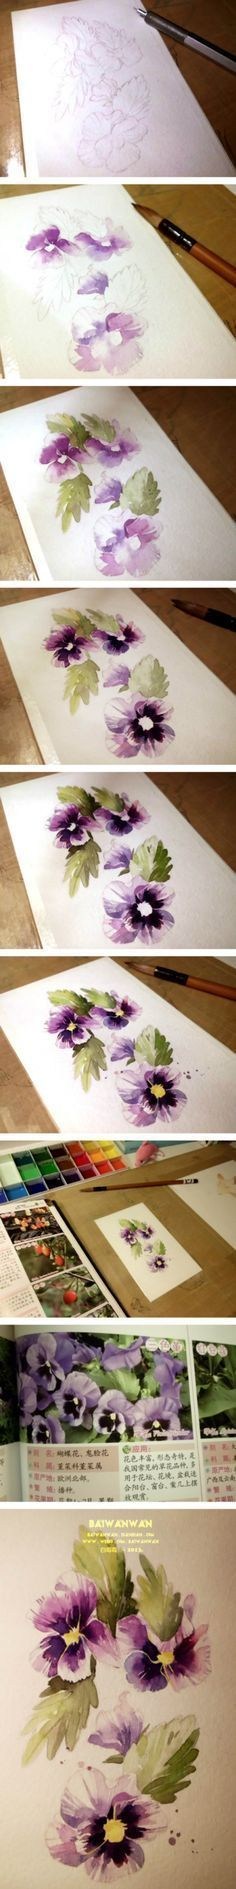 20 Delicate Colorful Watercolor Flower Painting Tutorials In Images-HOMESTHETICS… #watercolorarts